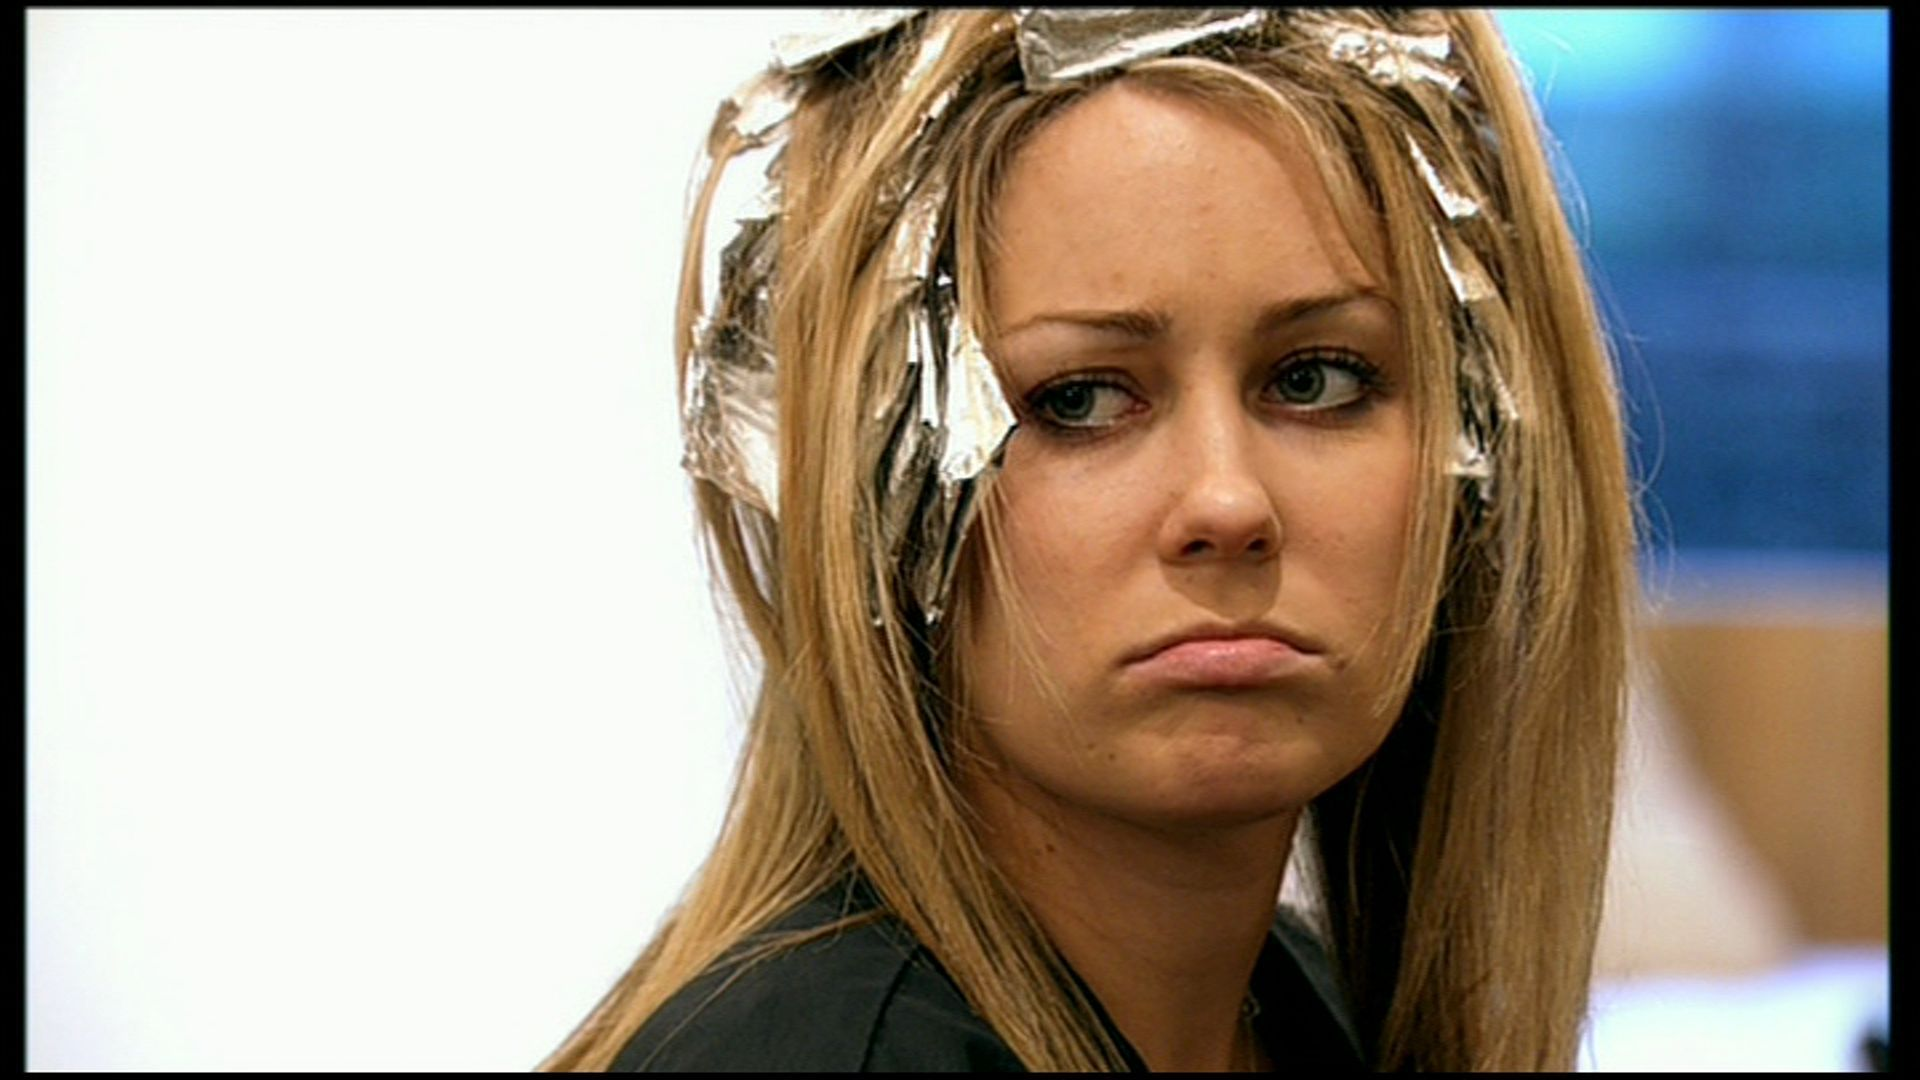 The-Hills-1x07-Somebody-Always-Has-To-Cry-lauren-conrad-21837848-1920-1080